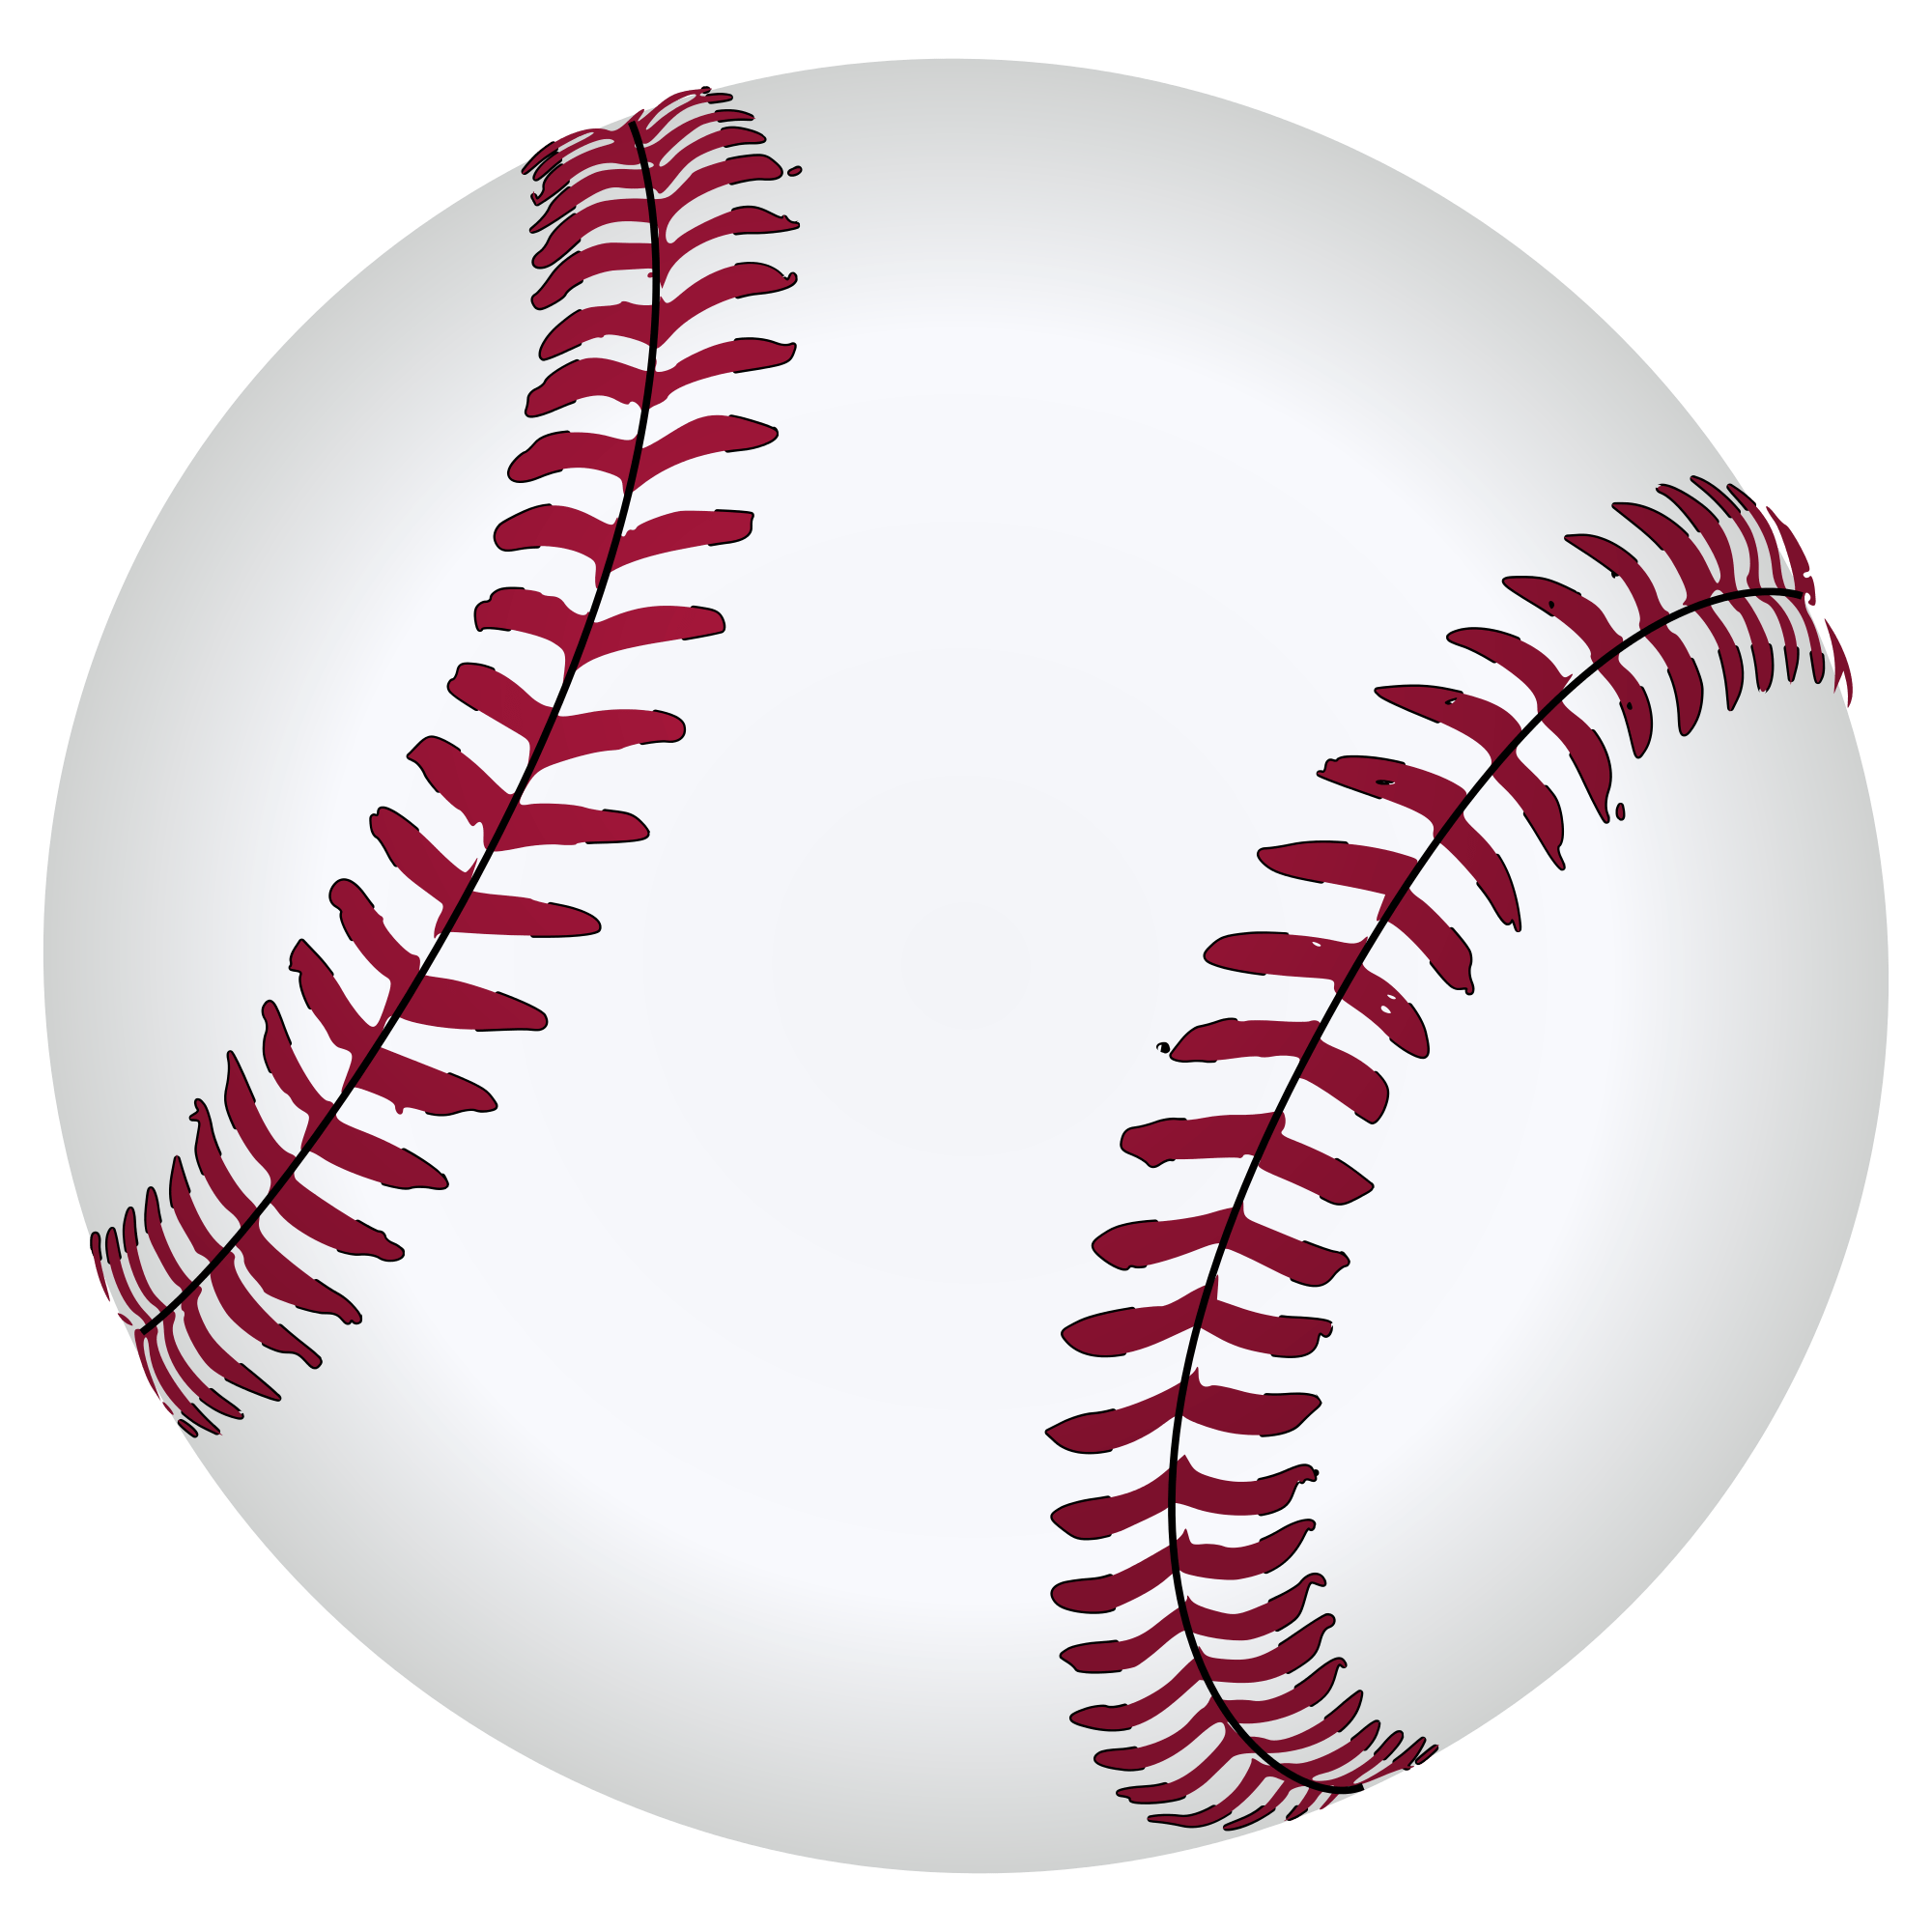 baseball transparent png stickpng #18855